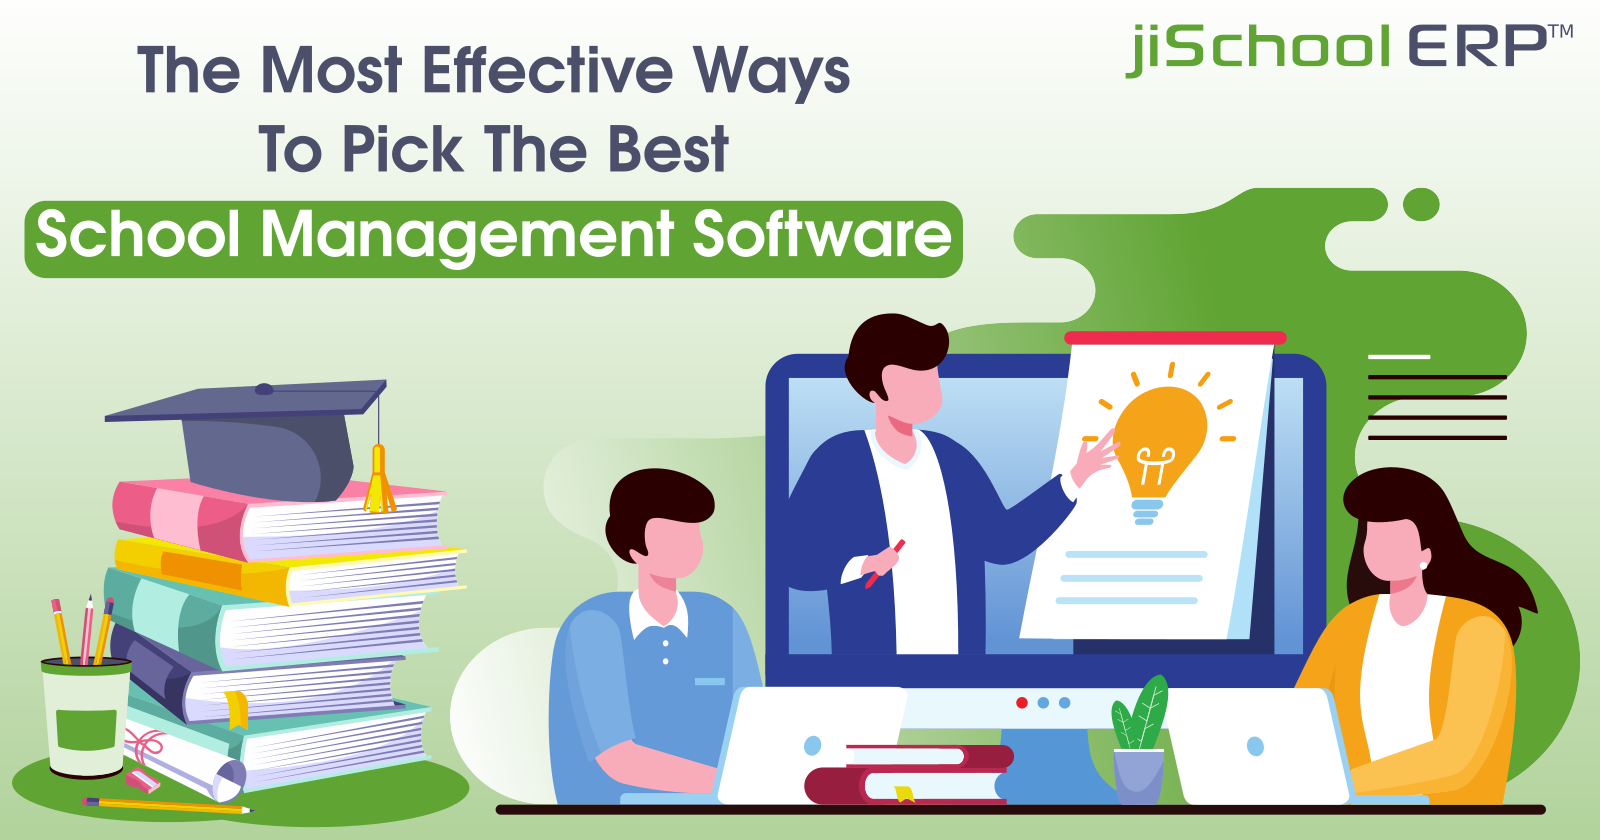 Most Effective Ways To Pick The Best School Management Software